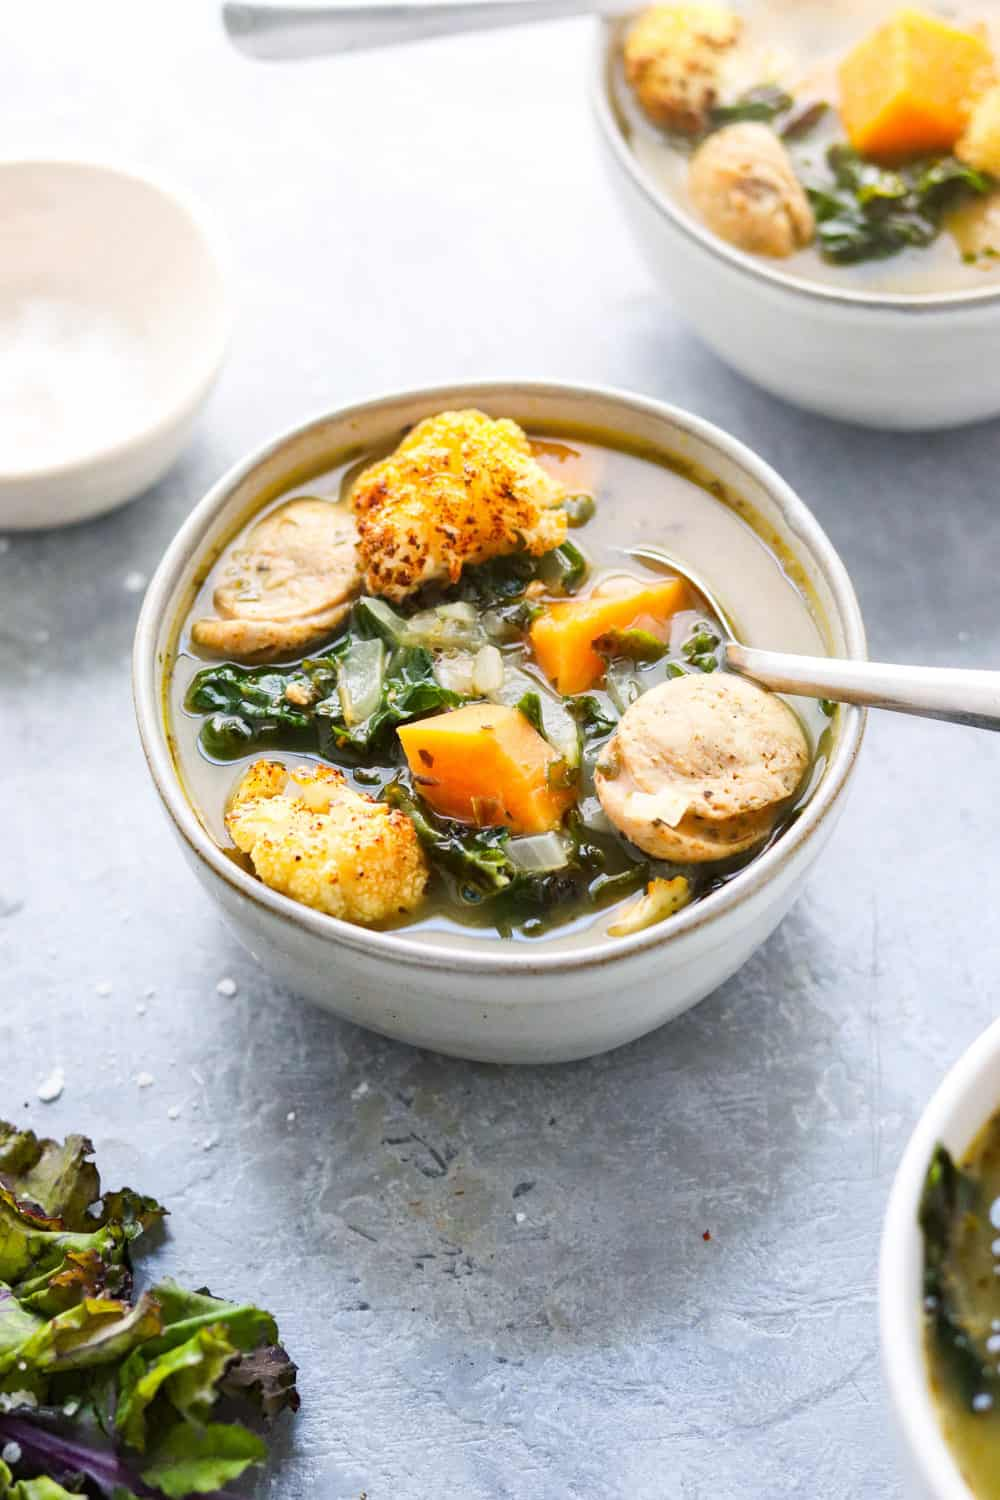 round gray bowl filled with soup topped with sausage and green and orange veggies with a spoon in the bowl of soup.